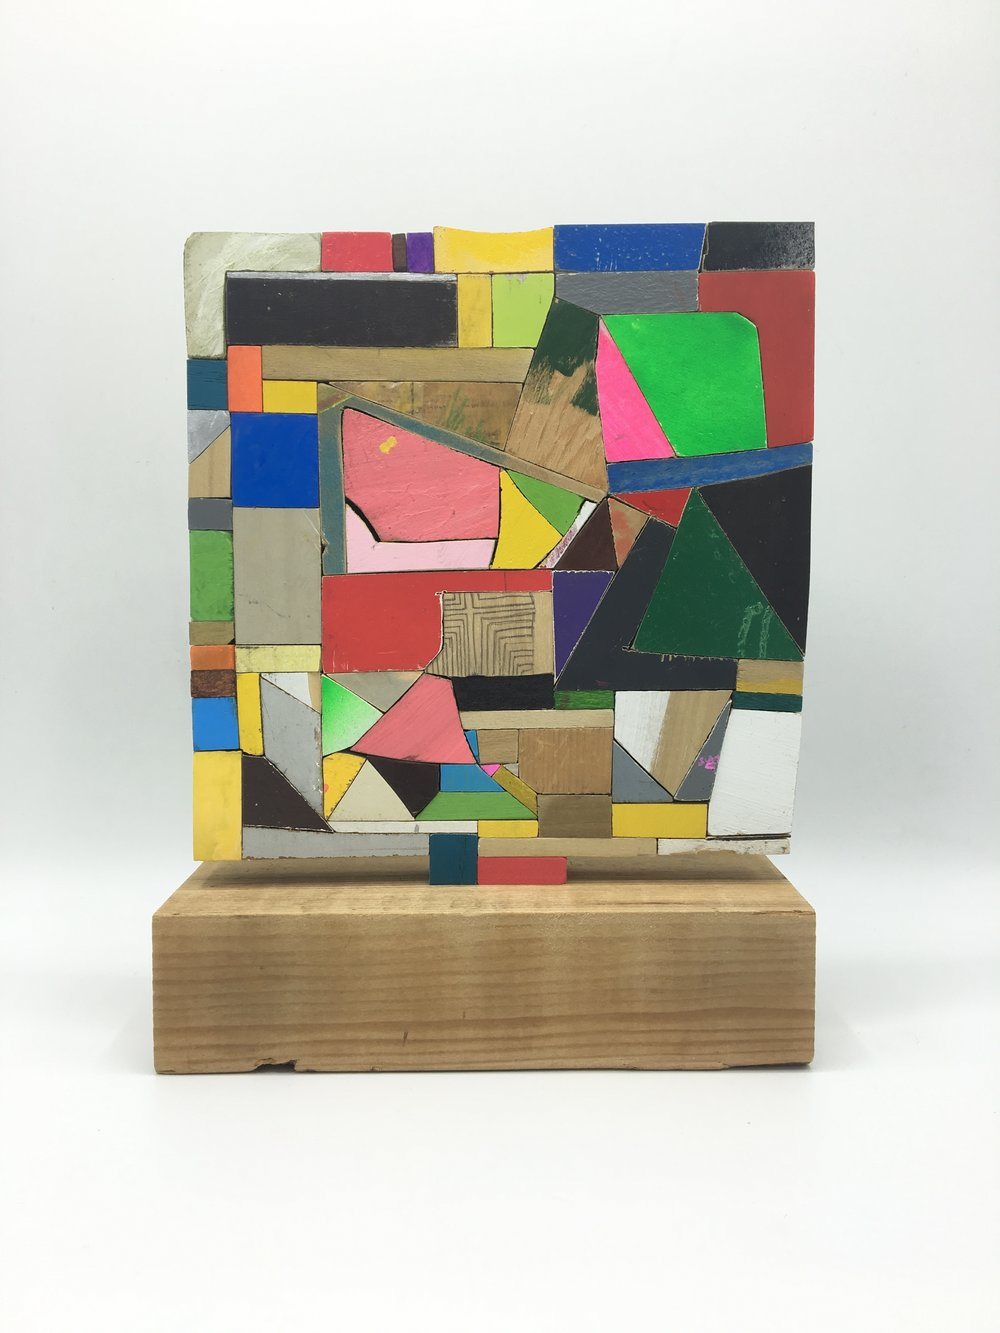 Patch, 2017 Wood, Paint, Glue 9 x 7 x 2 ½ in.